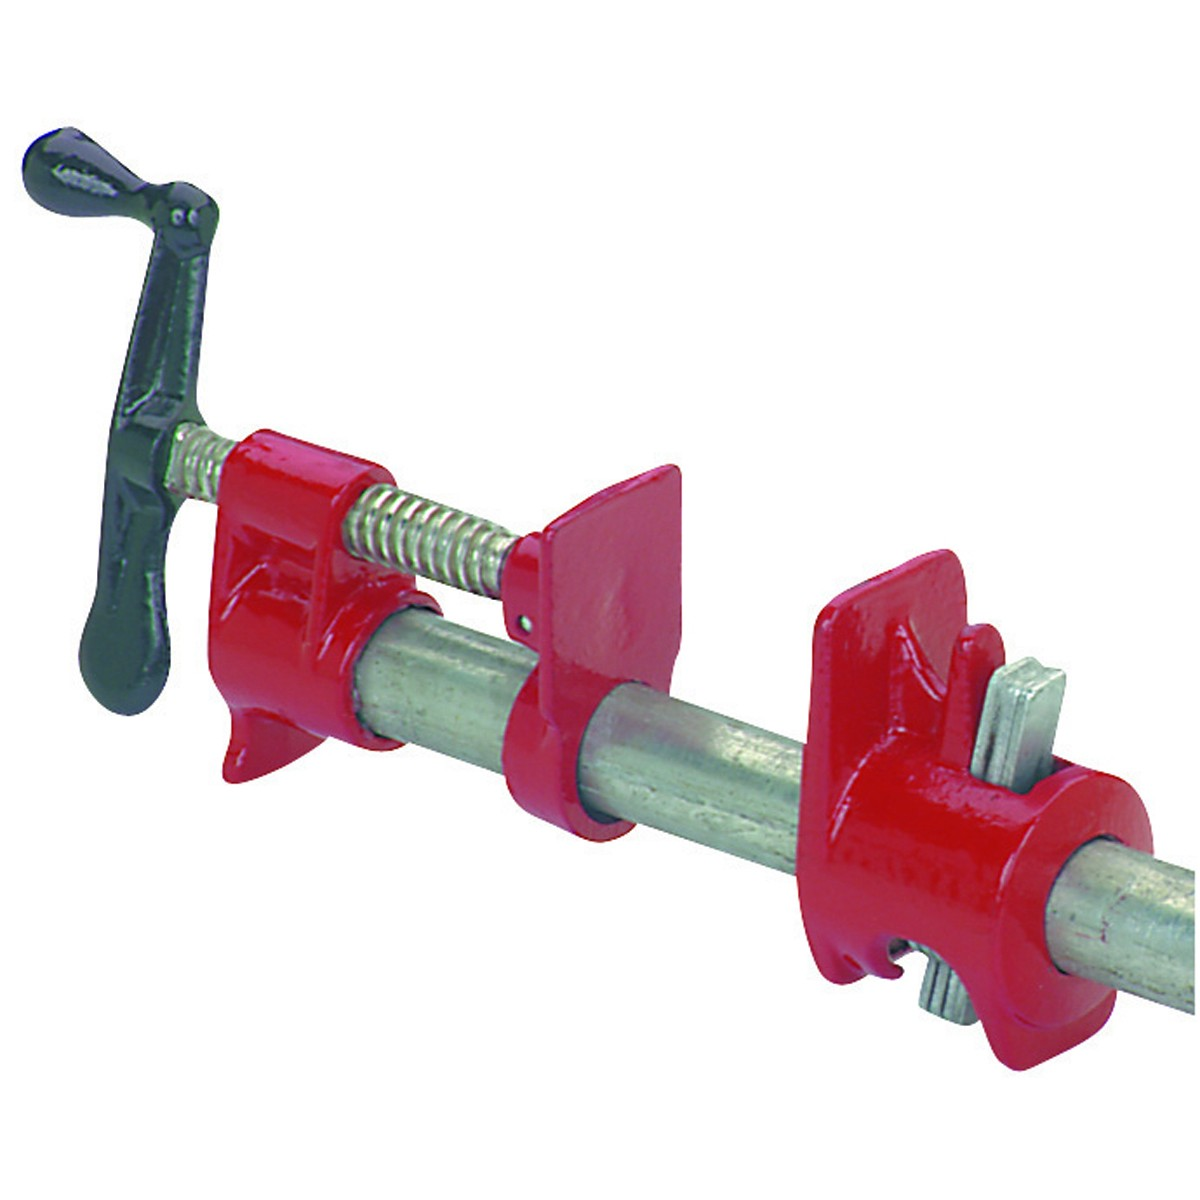 3/4 In. Heavy Duty Cast Iron Pipe Clamp 2 Pc